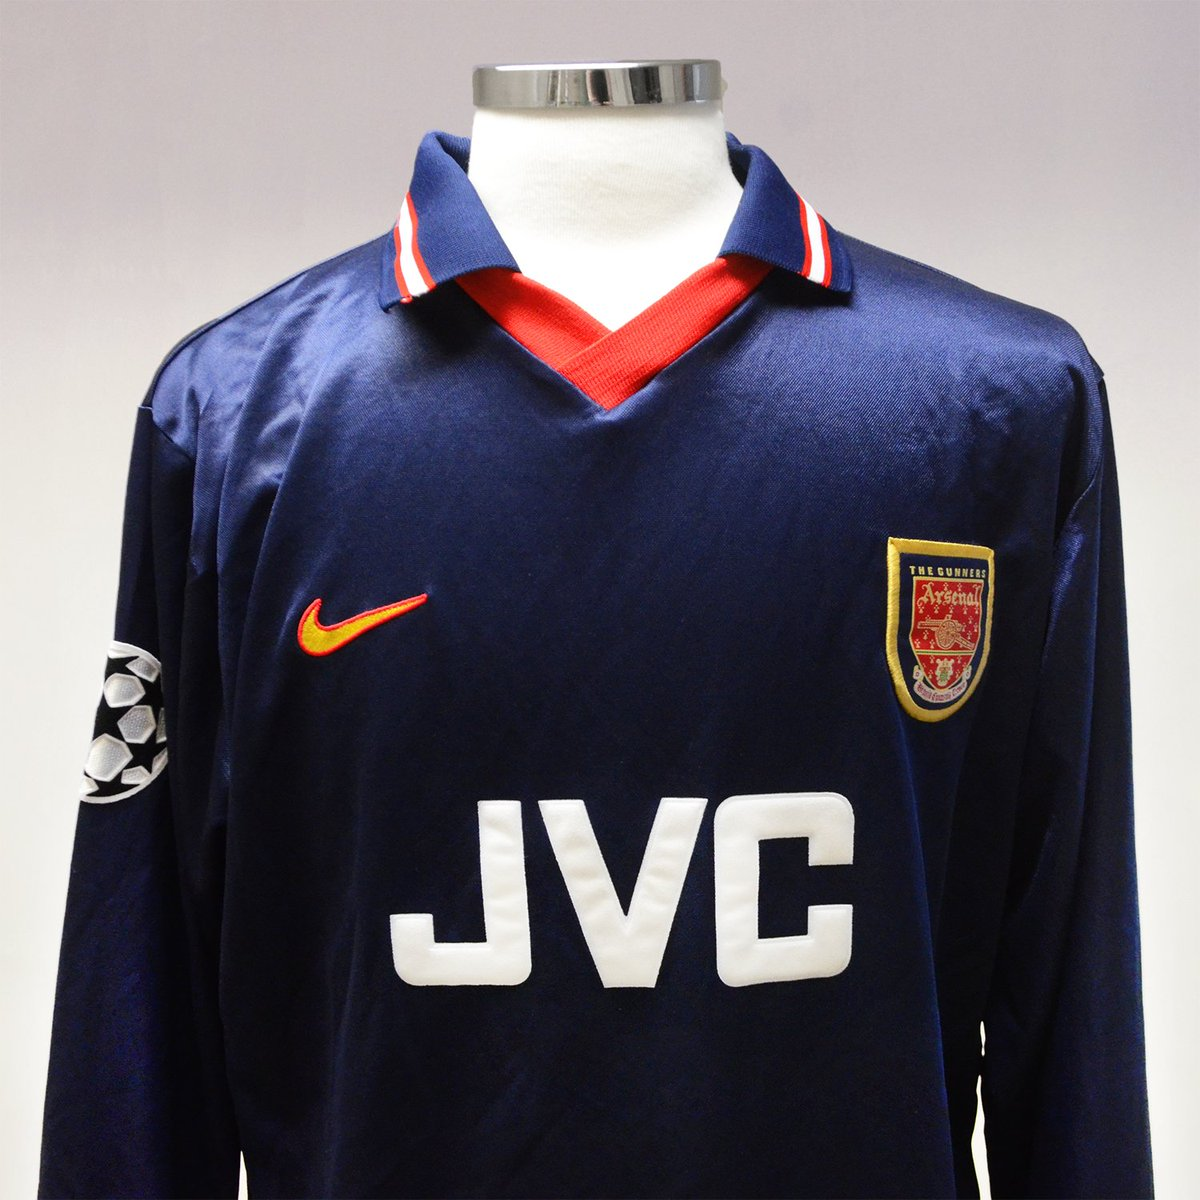 timeless design d33ae bc2e1 Classic Football Shirts on Twitter: